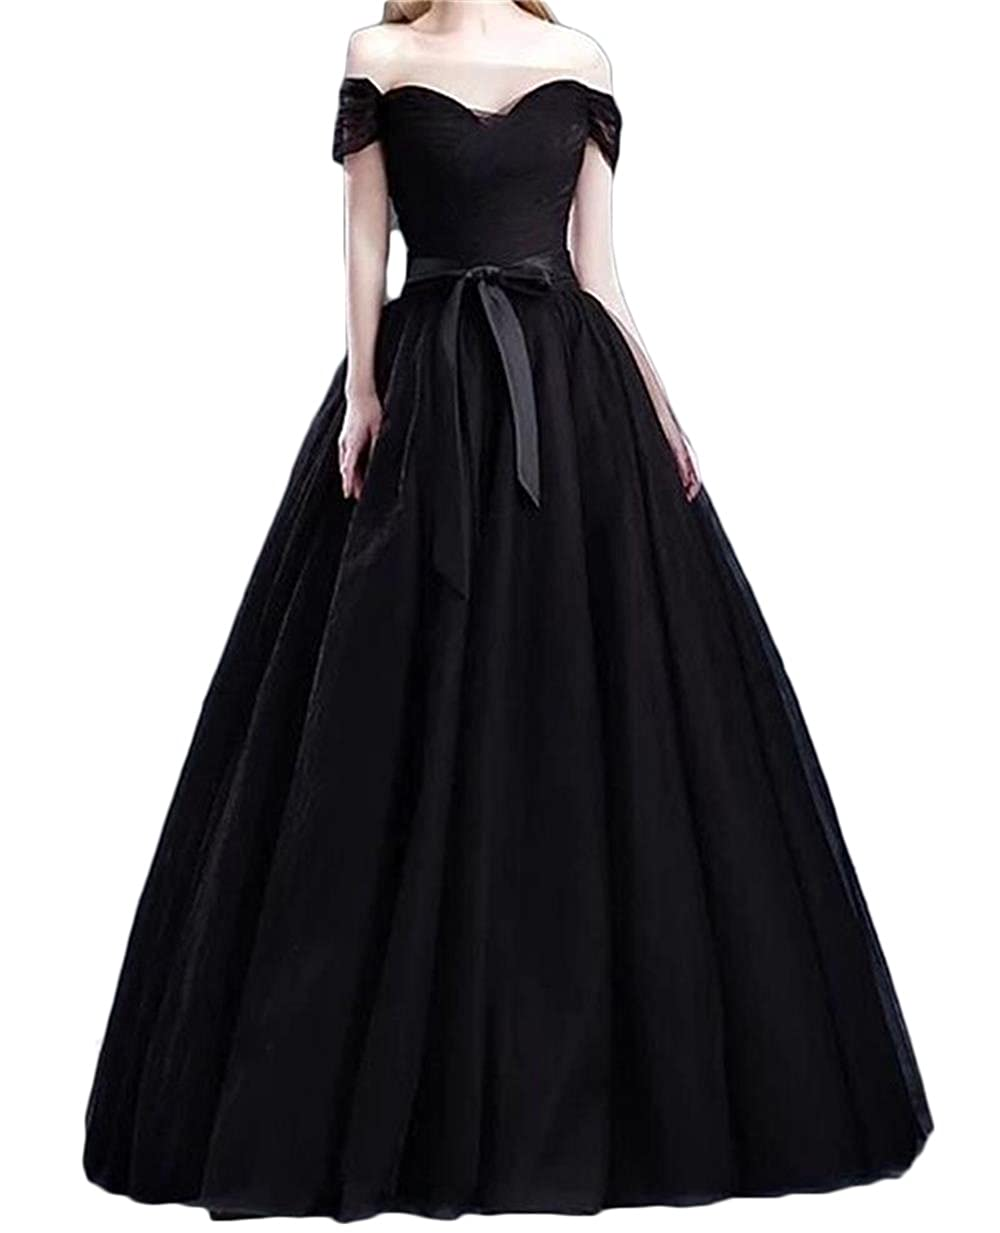 6fafd623d1a3 Women V Neck off the shoulder corset belt a line tulle floor length evening  party dresses prom dress wedding for juniors teens,if you want the dress  puffy, ...